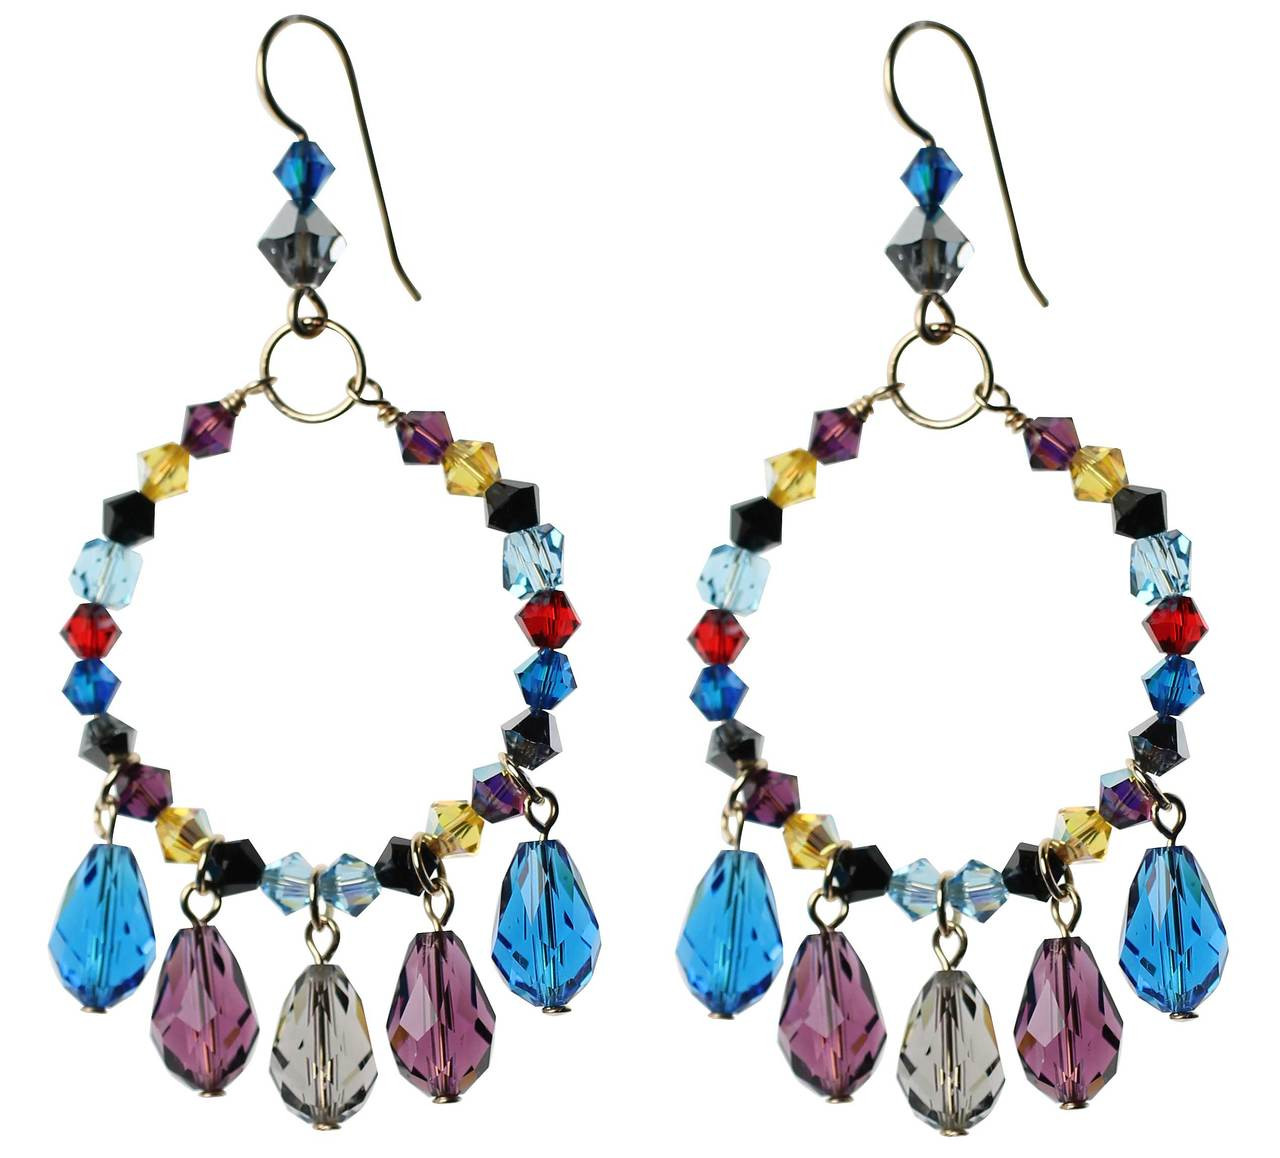 2e88aa8d64b28 Colorful Hoop Earrings with Droplets • Crystals from Swarovski • 14K Gold  Filled Metal • Navajo Collection